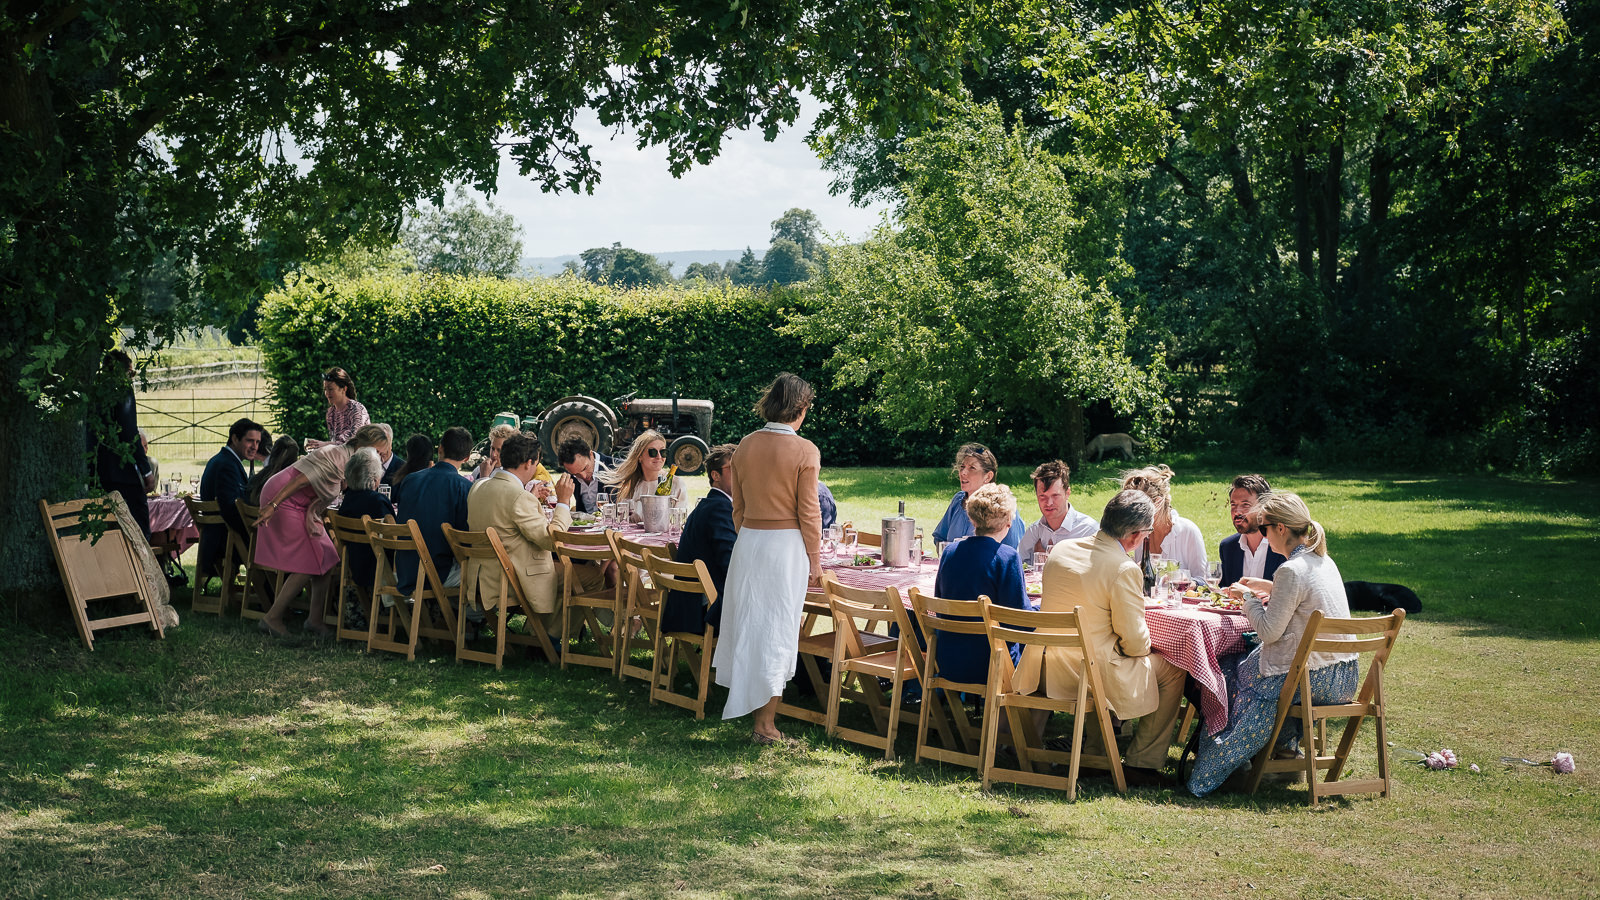 Special occasion photography with a lunch on a long table at summer garden party